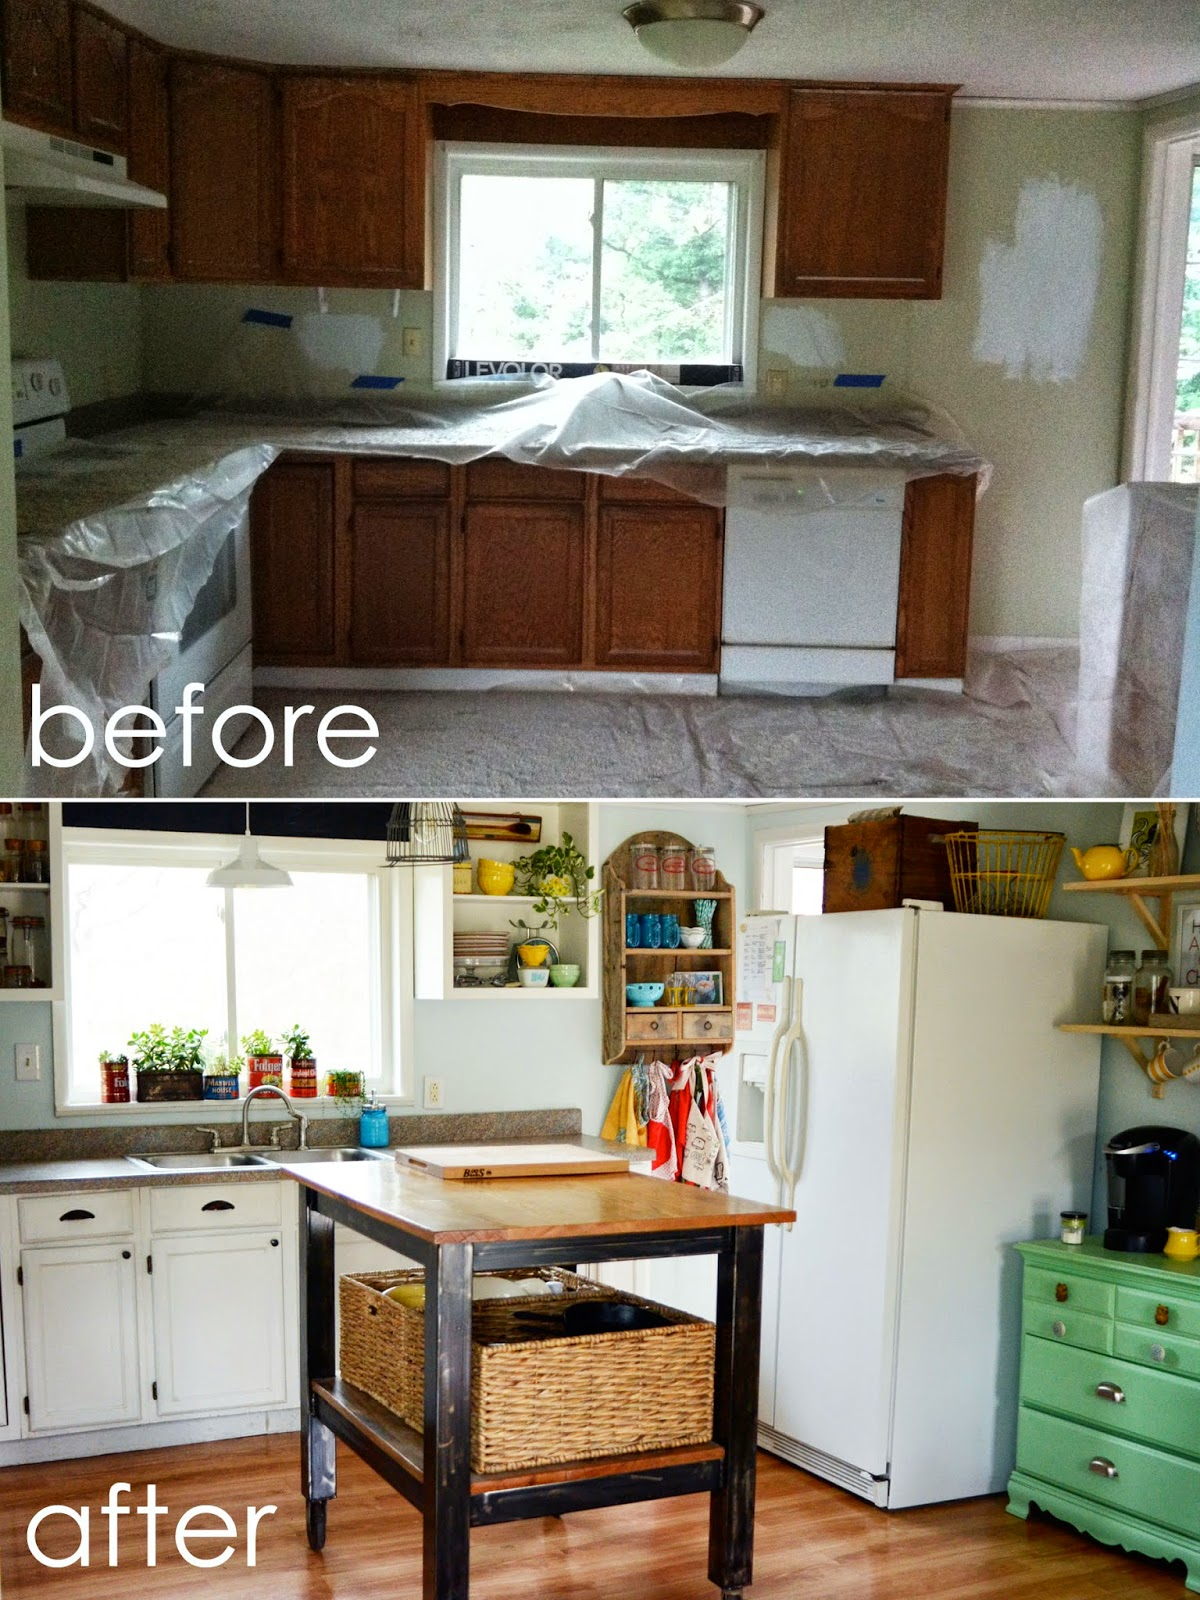 natalie creates our kitchen remodel before & after